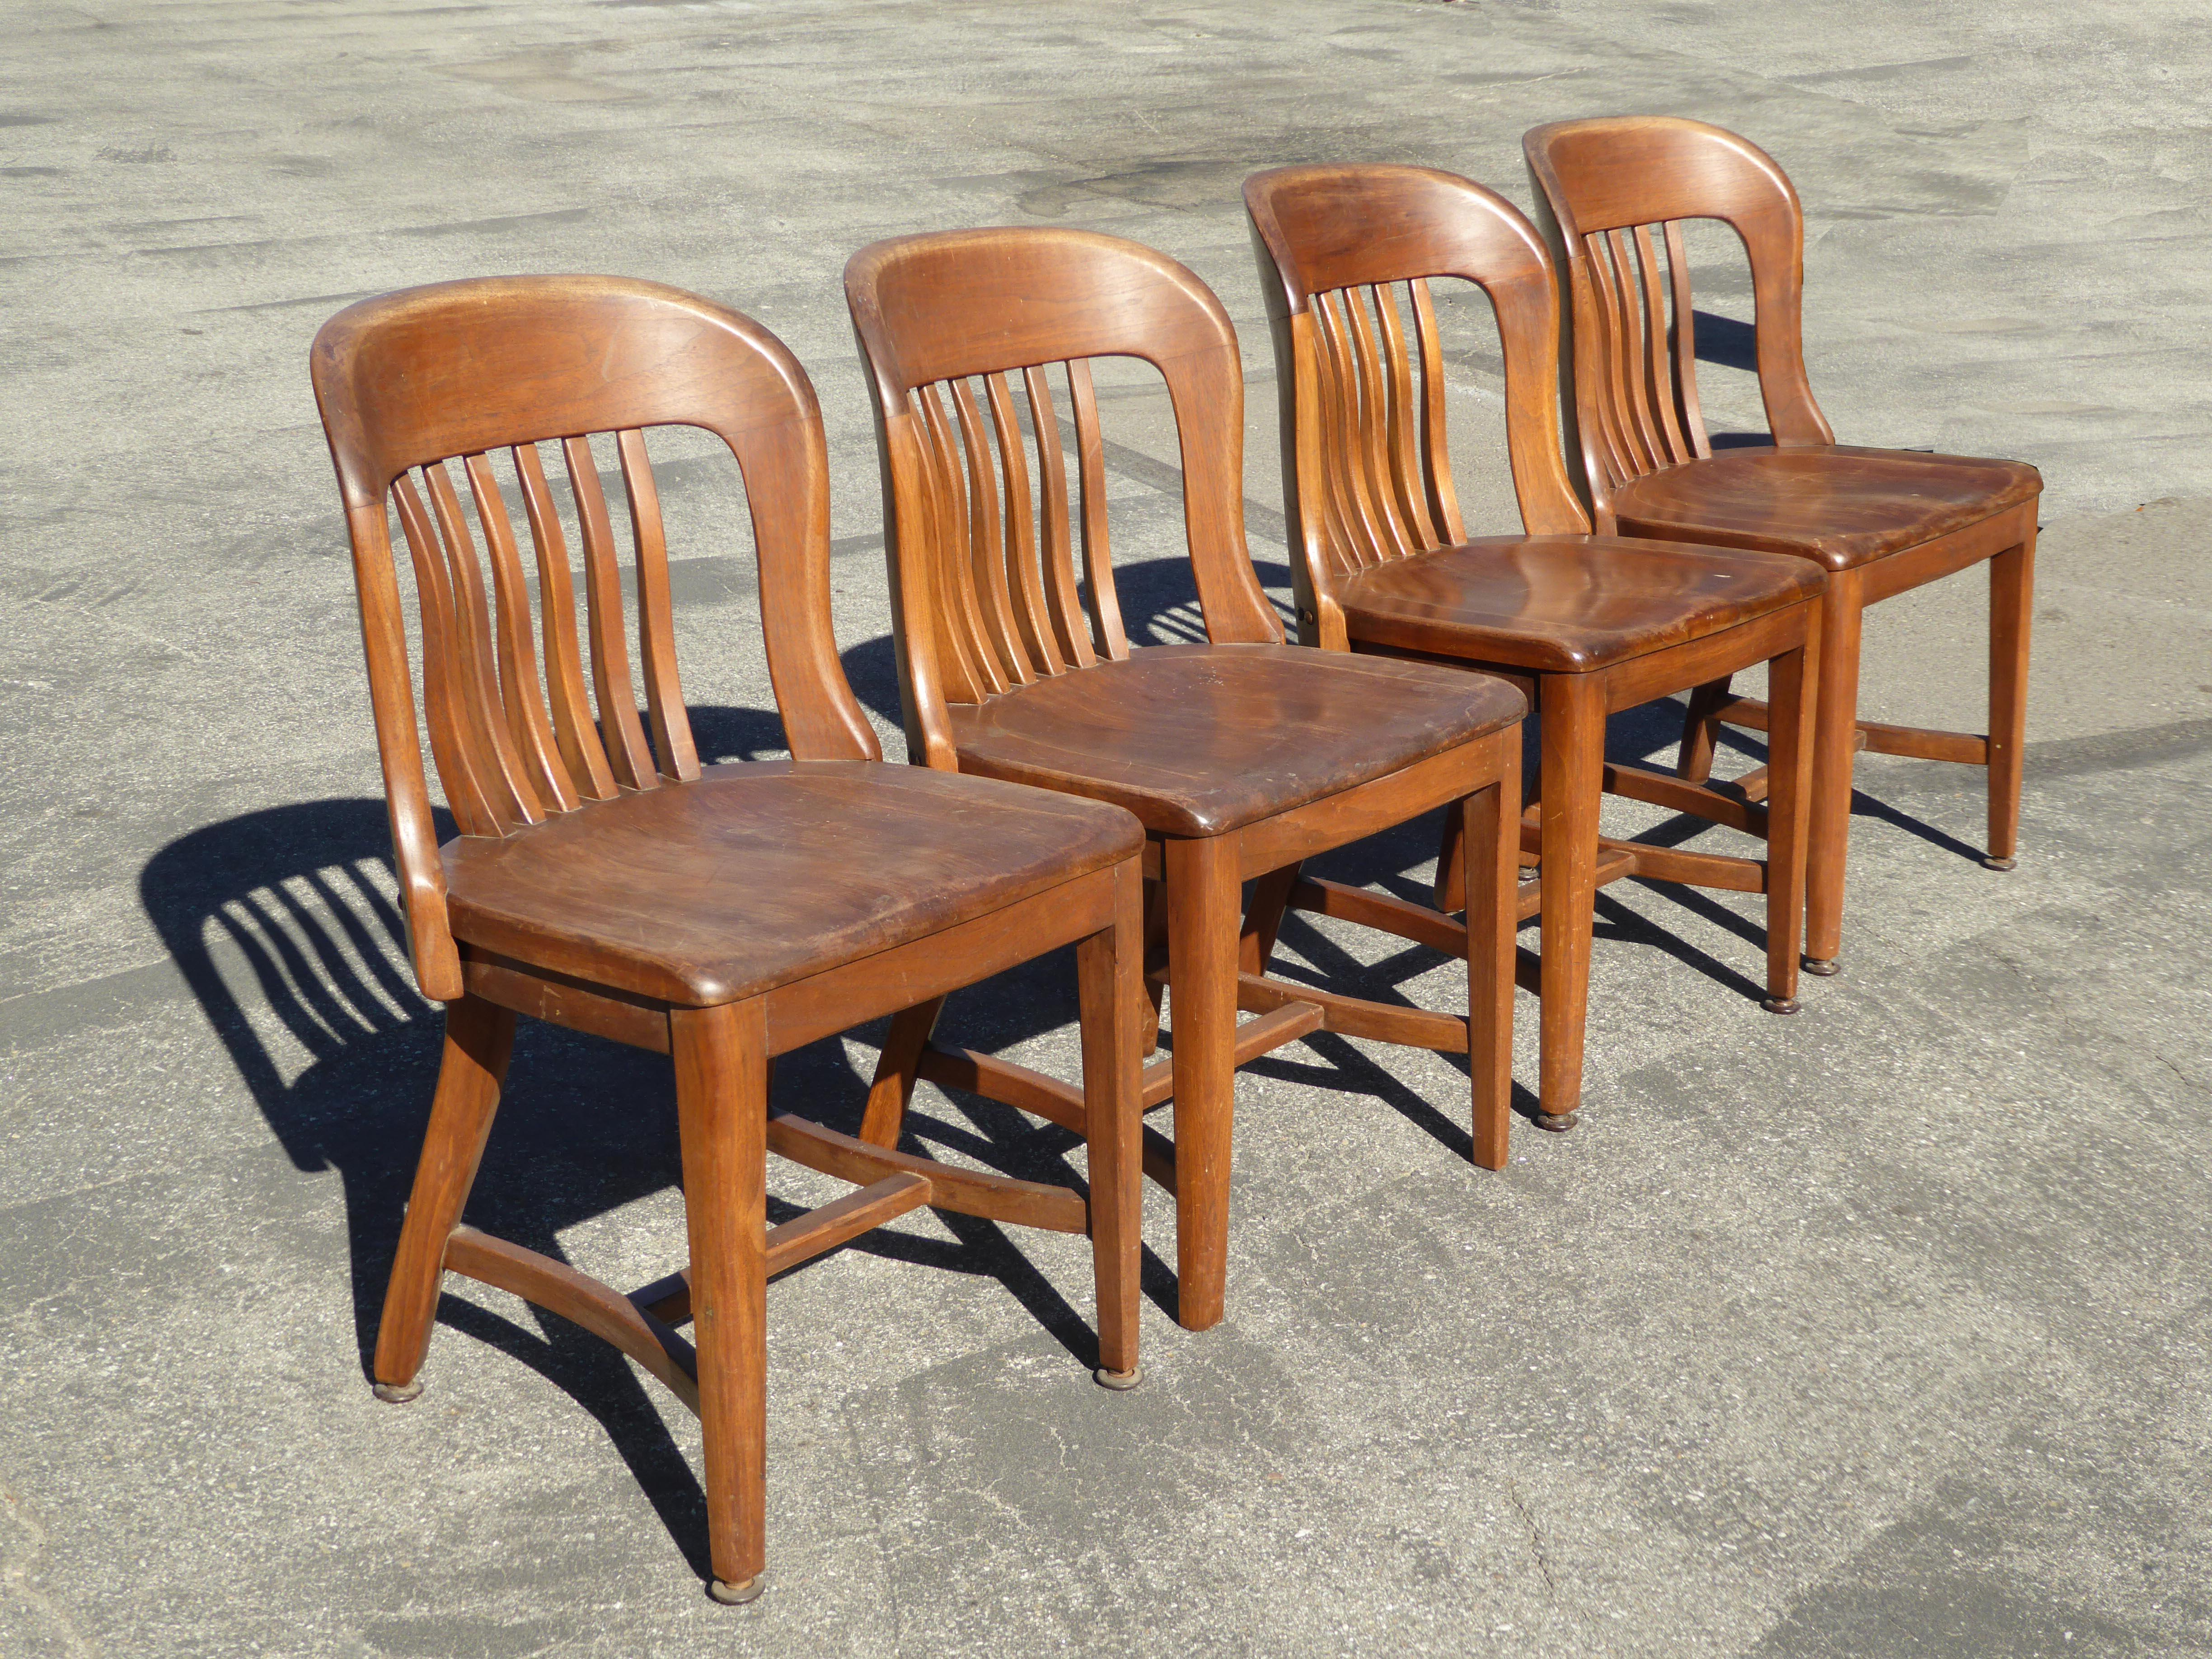 Set Of 4 Vintage Mid Century Brown Solid Wood Farmhouse Chic Library School  House Chairs